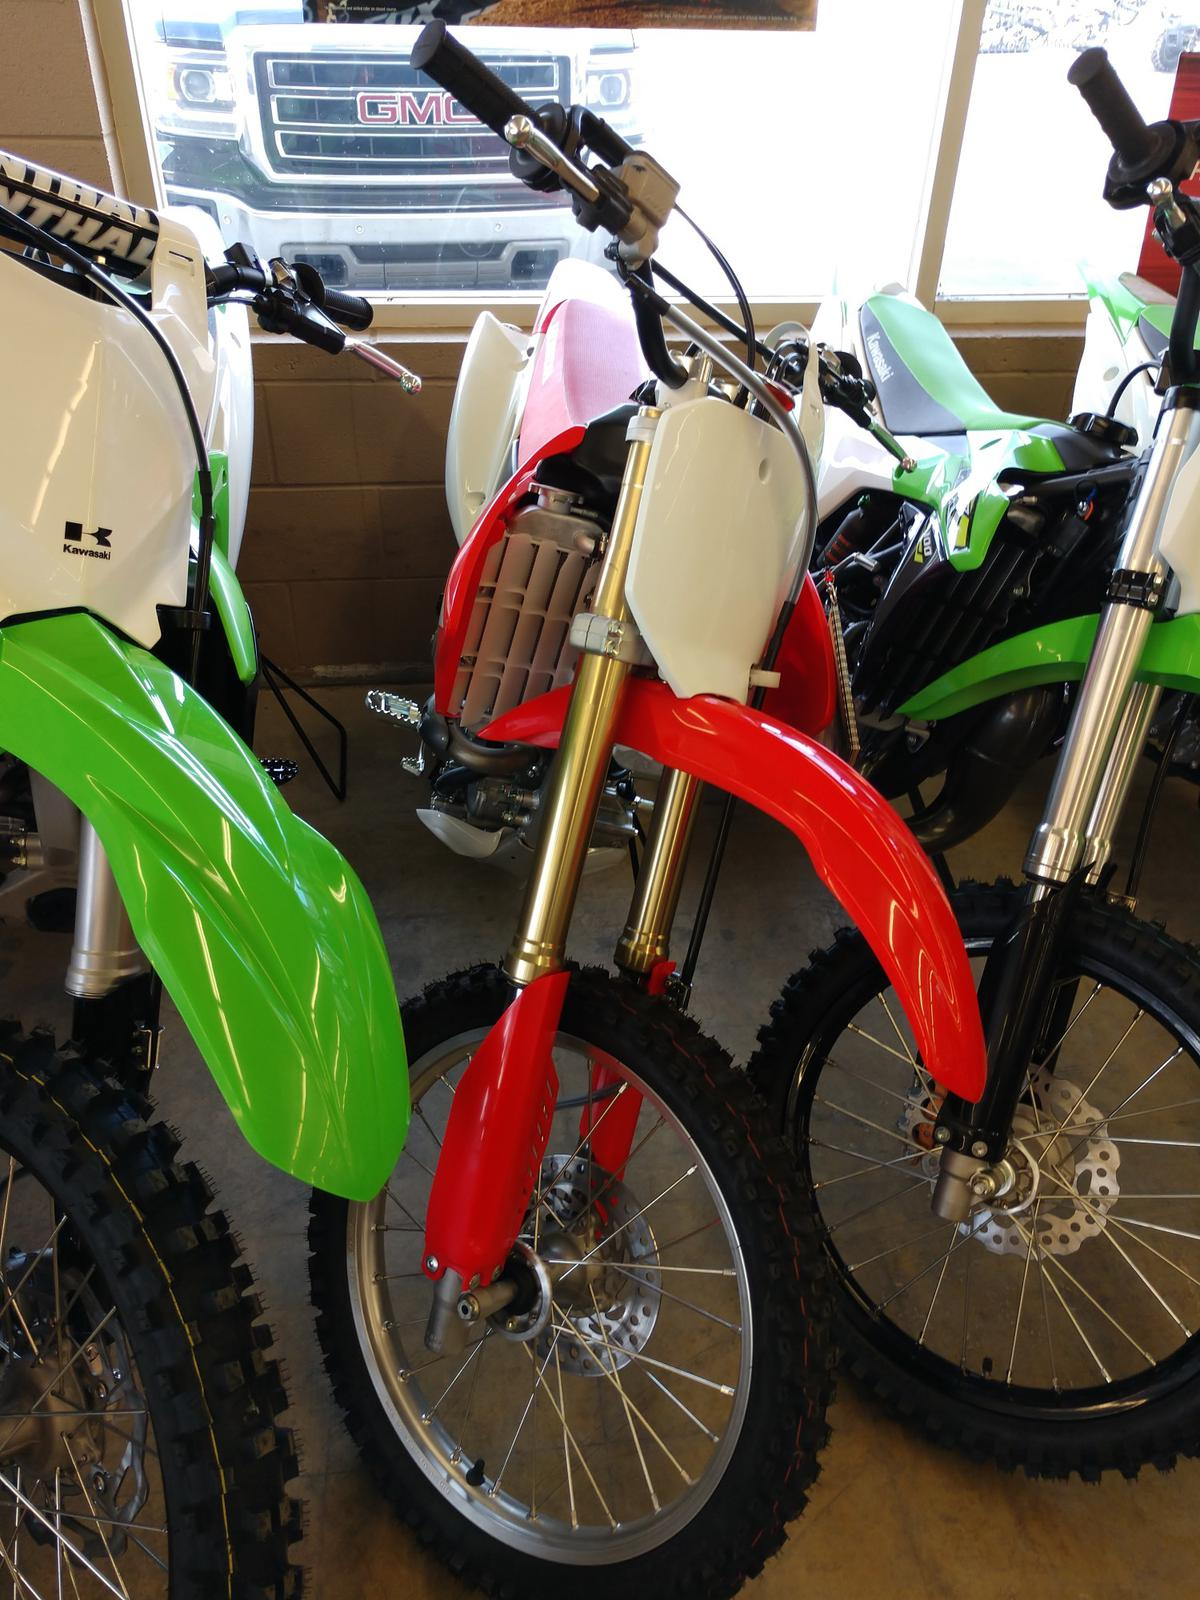 2018 Honda CRF150R EXPERT for sale in Heyburn ID Let s Ride